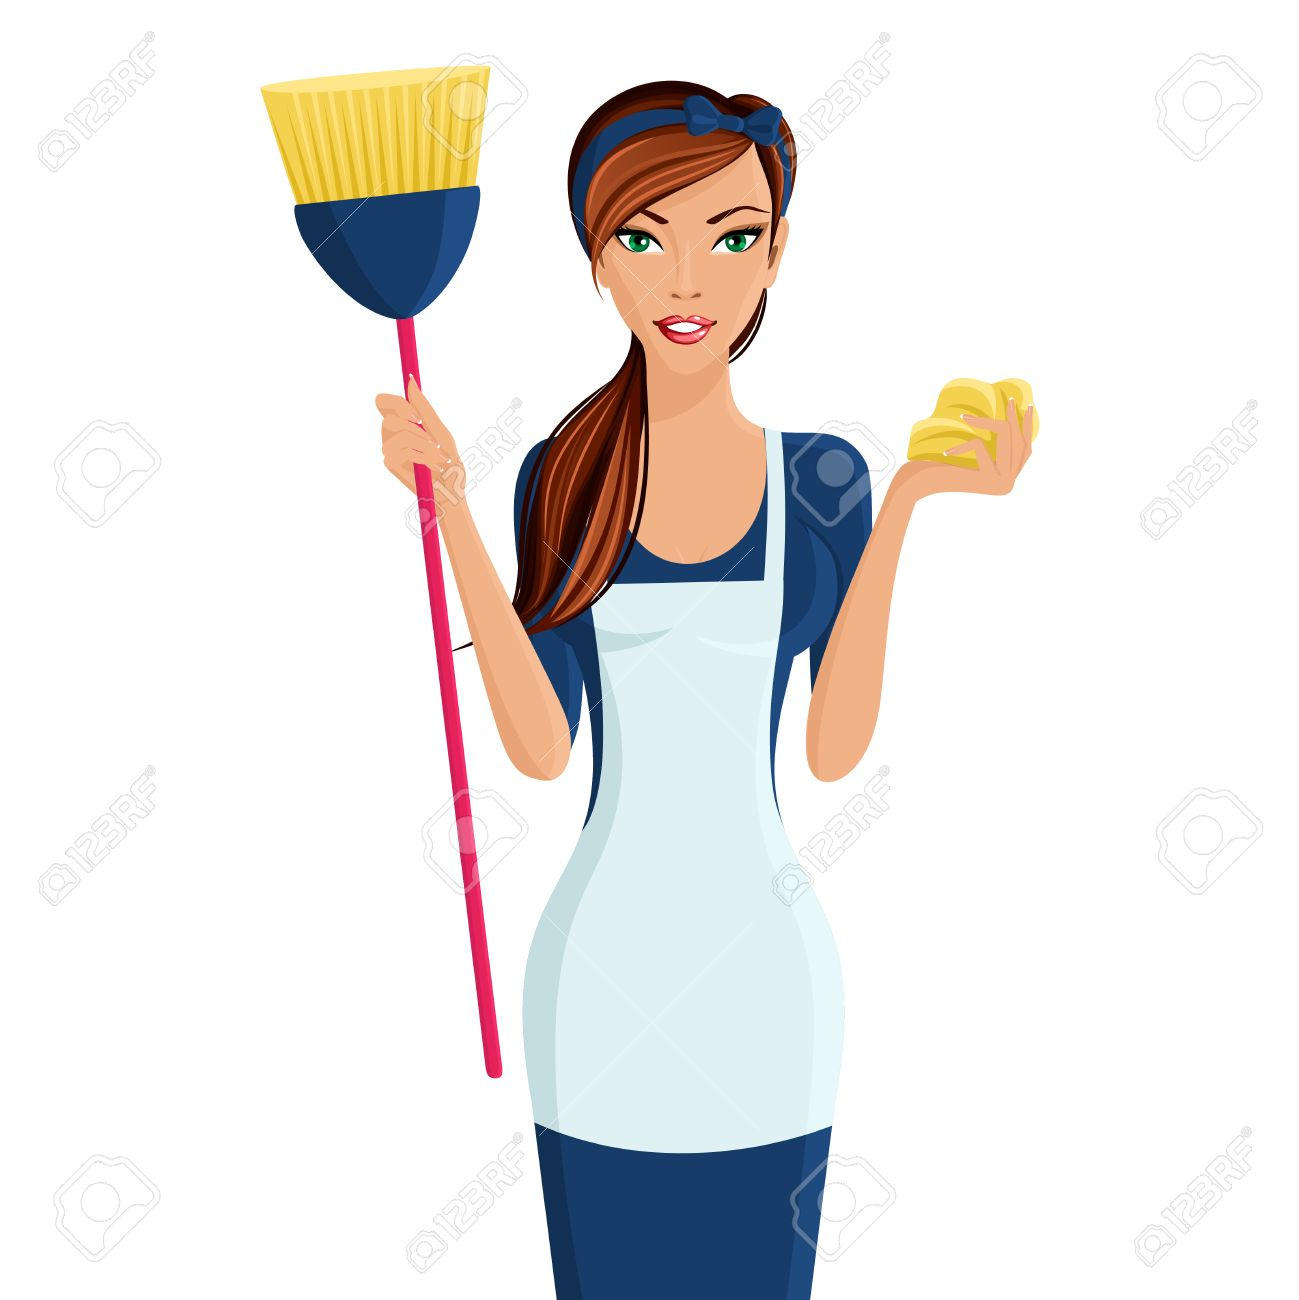 Woman cooking vector images amp pictures becuo - Apron Young Beautiful Cleaning Lady Professional Standing In Apron With Broom And Dustcloth In Hands